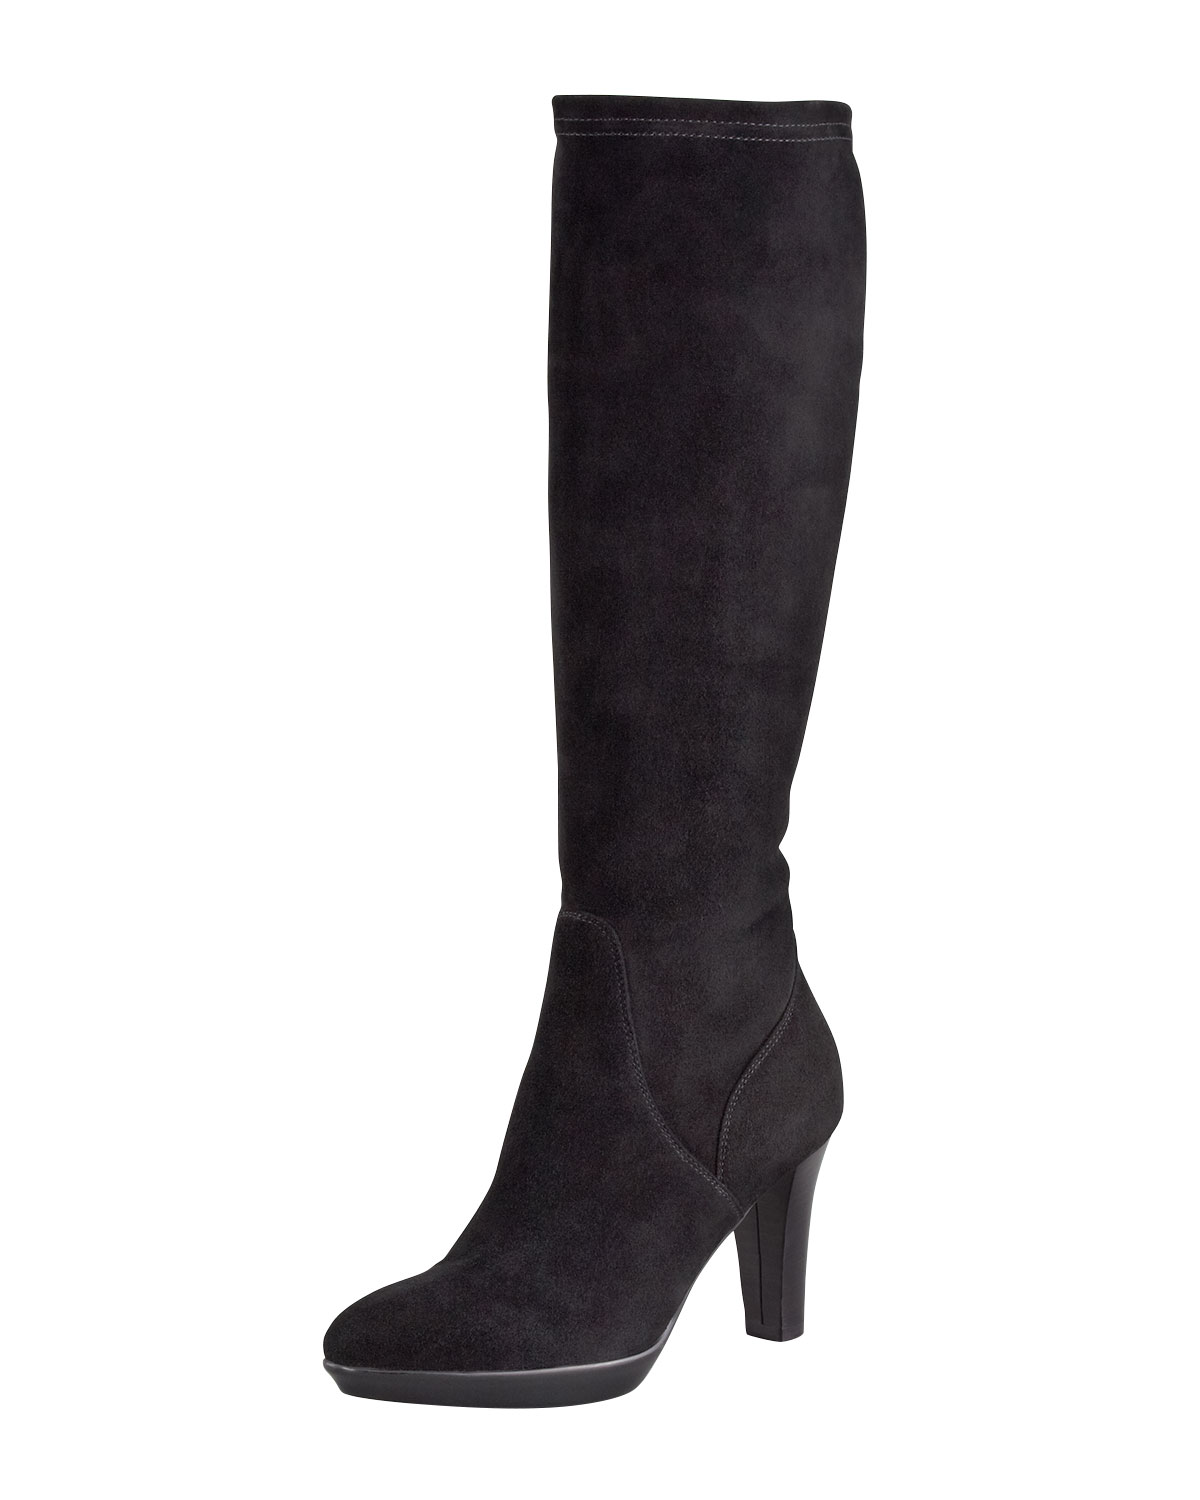 Suede Boots For Women VsAcSZO5